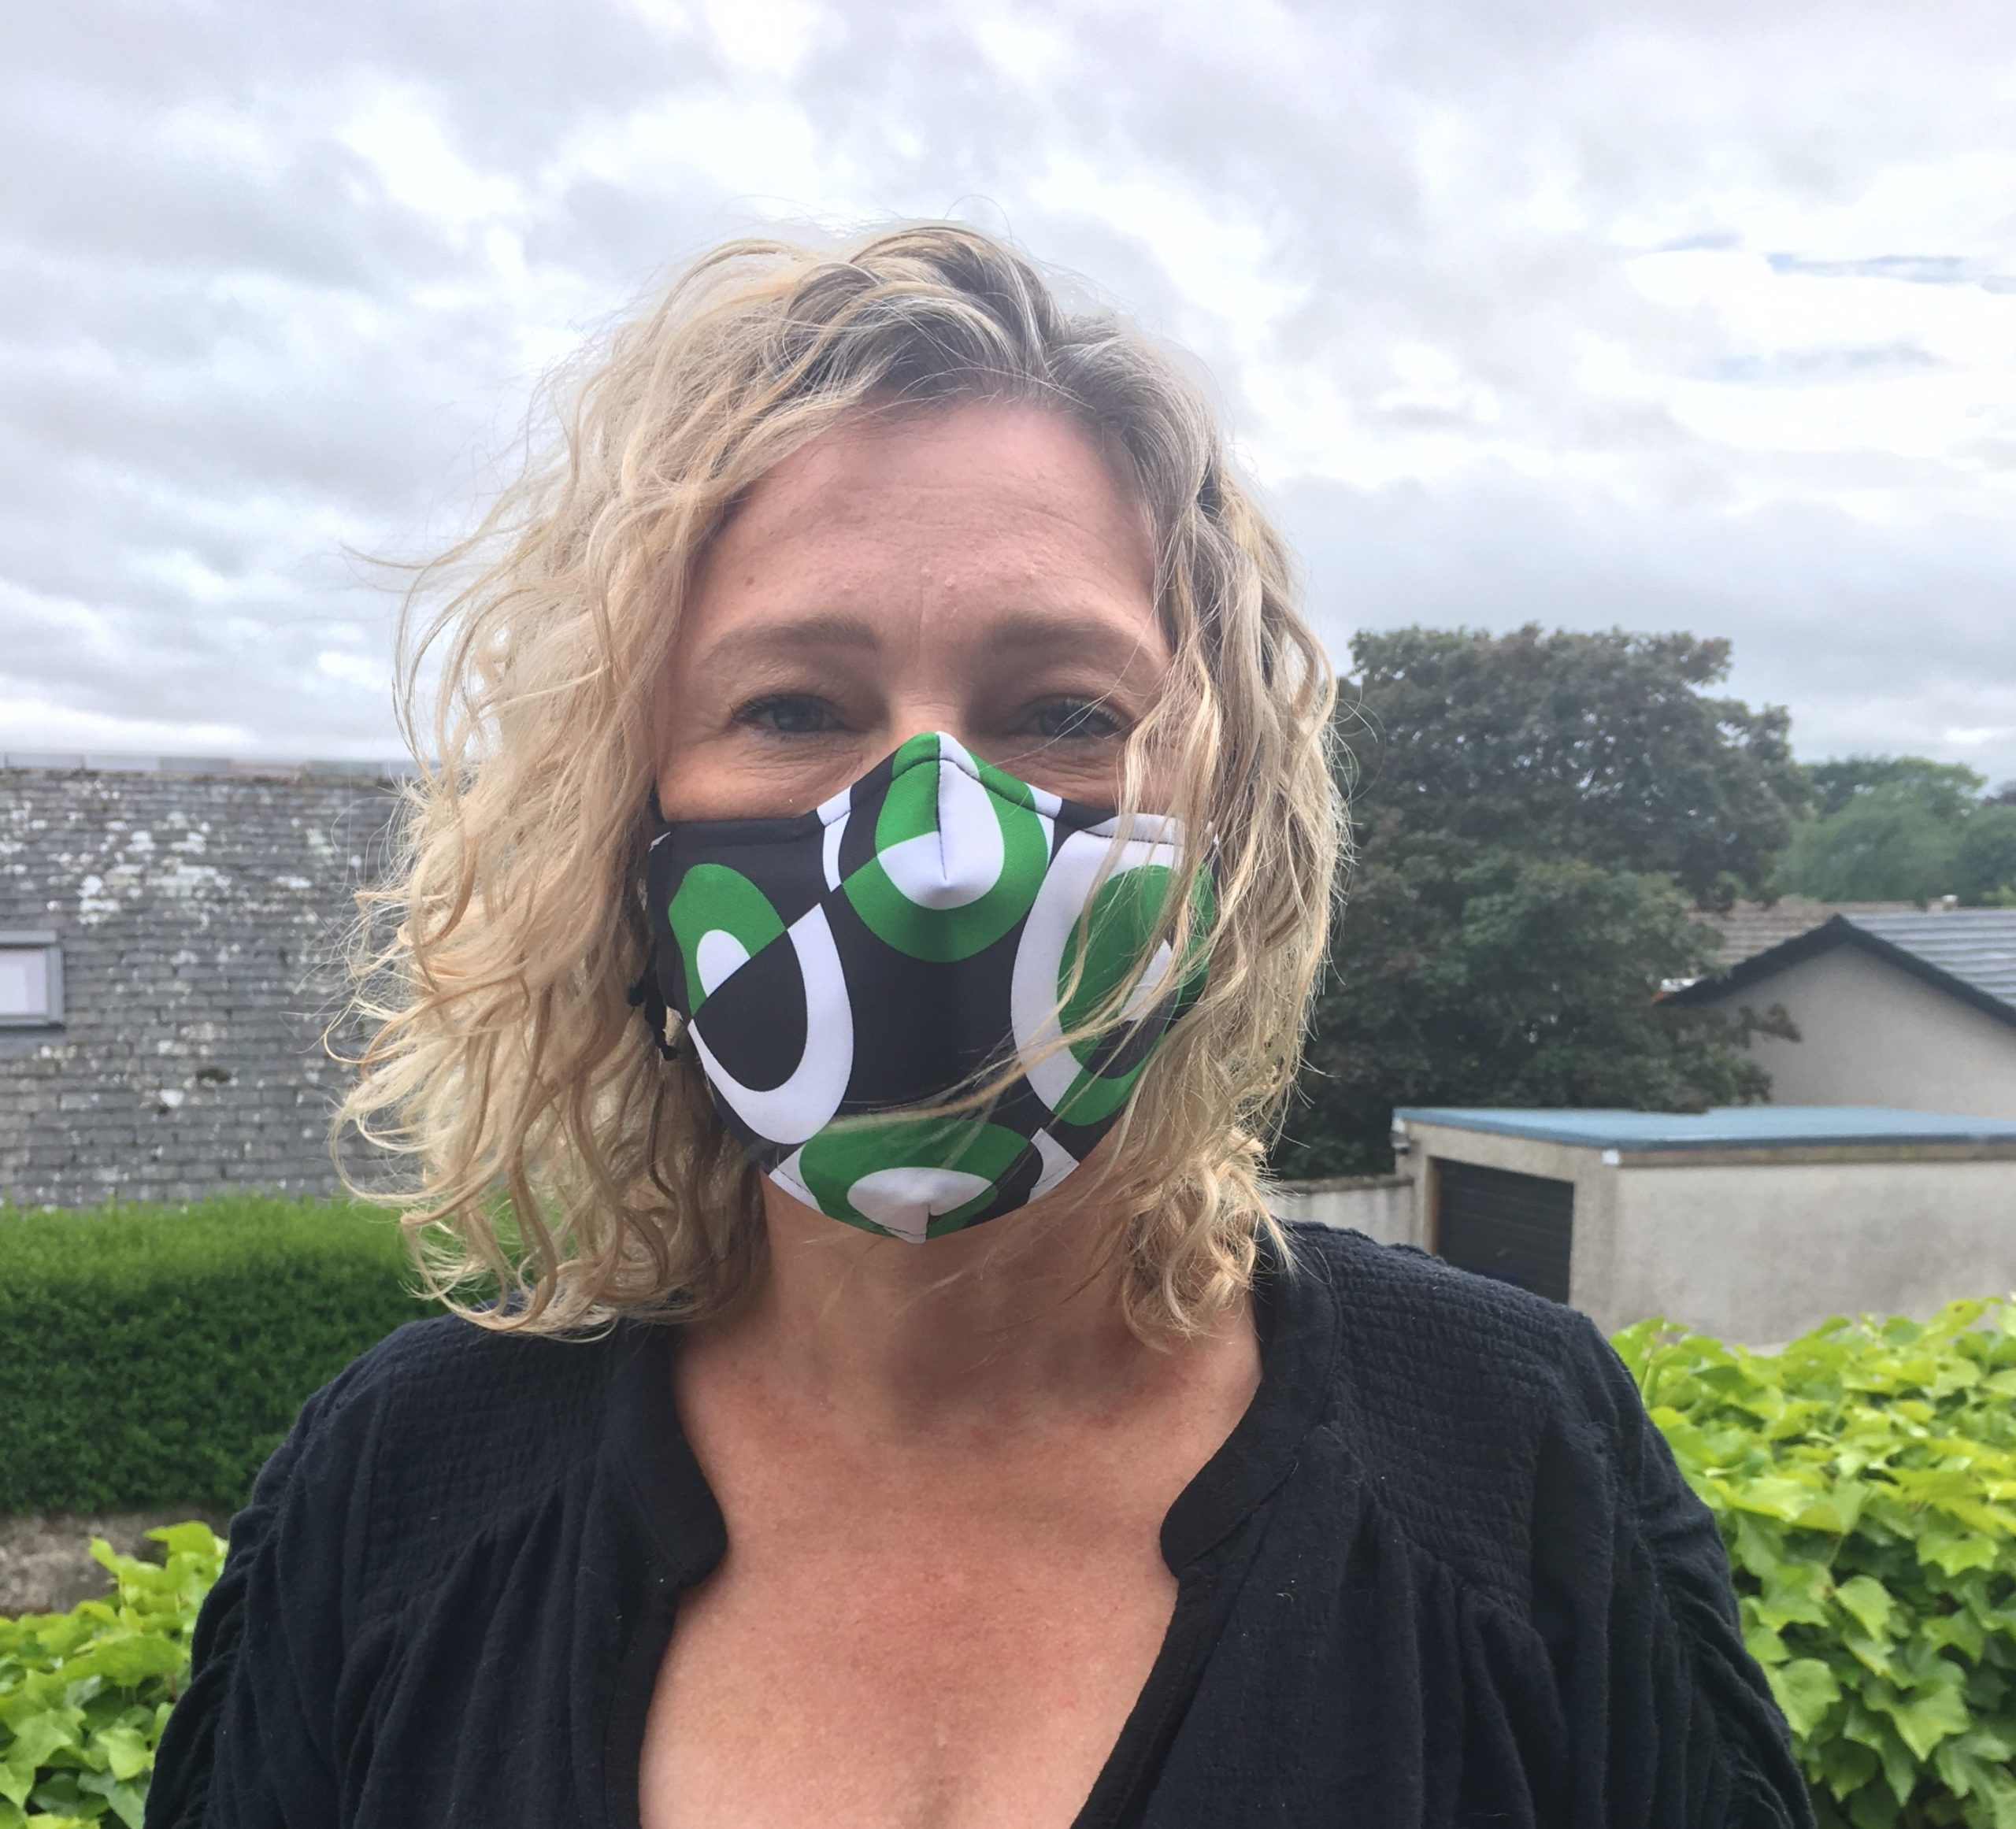 Gillian Martin MSP has advocated the wearing of masks.